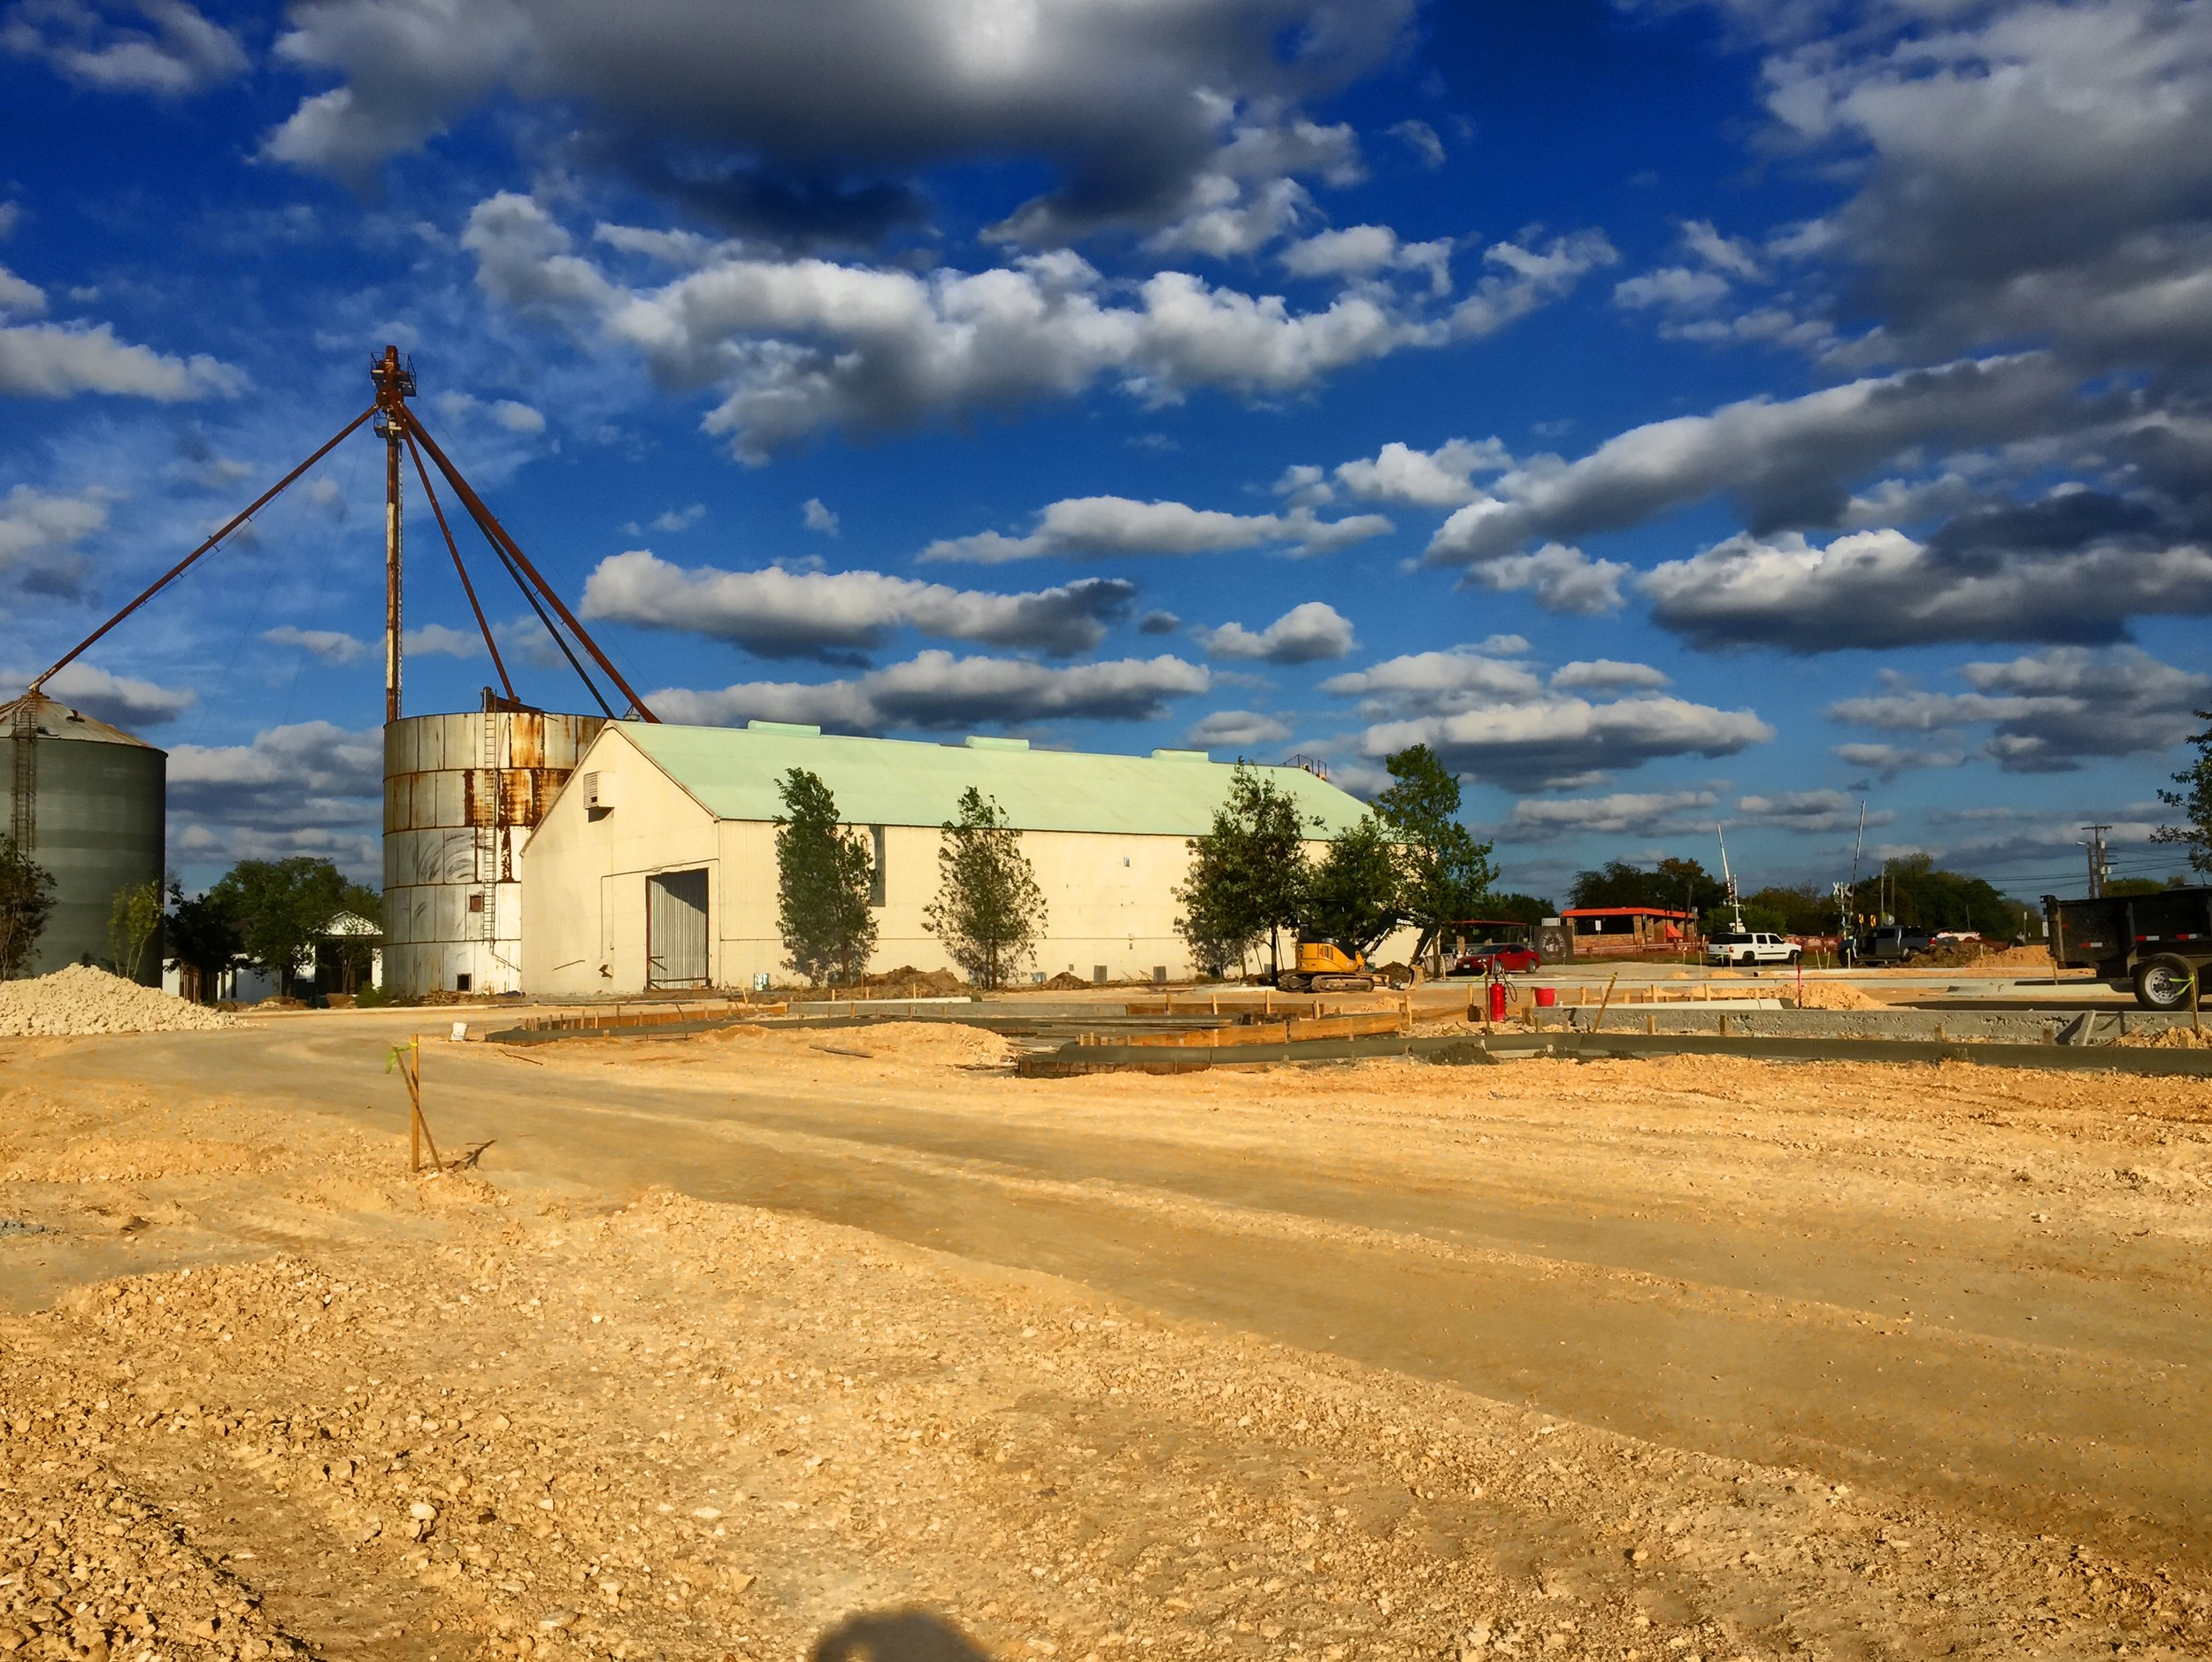 Here's a view of Big 'Un from the parking lot during construction.